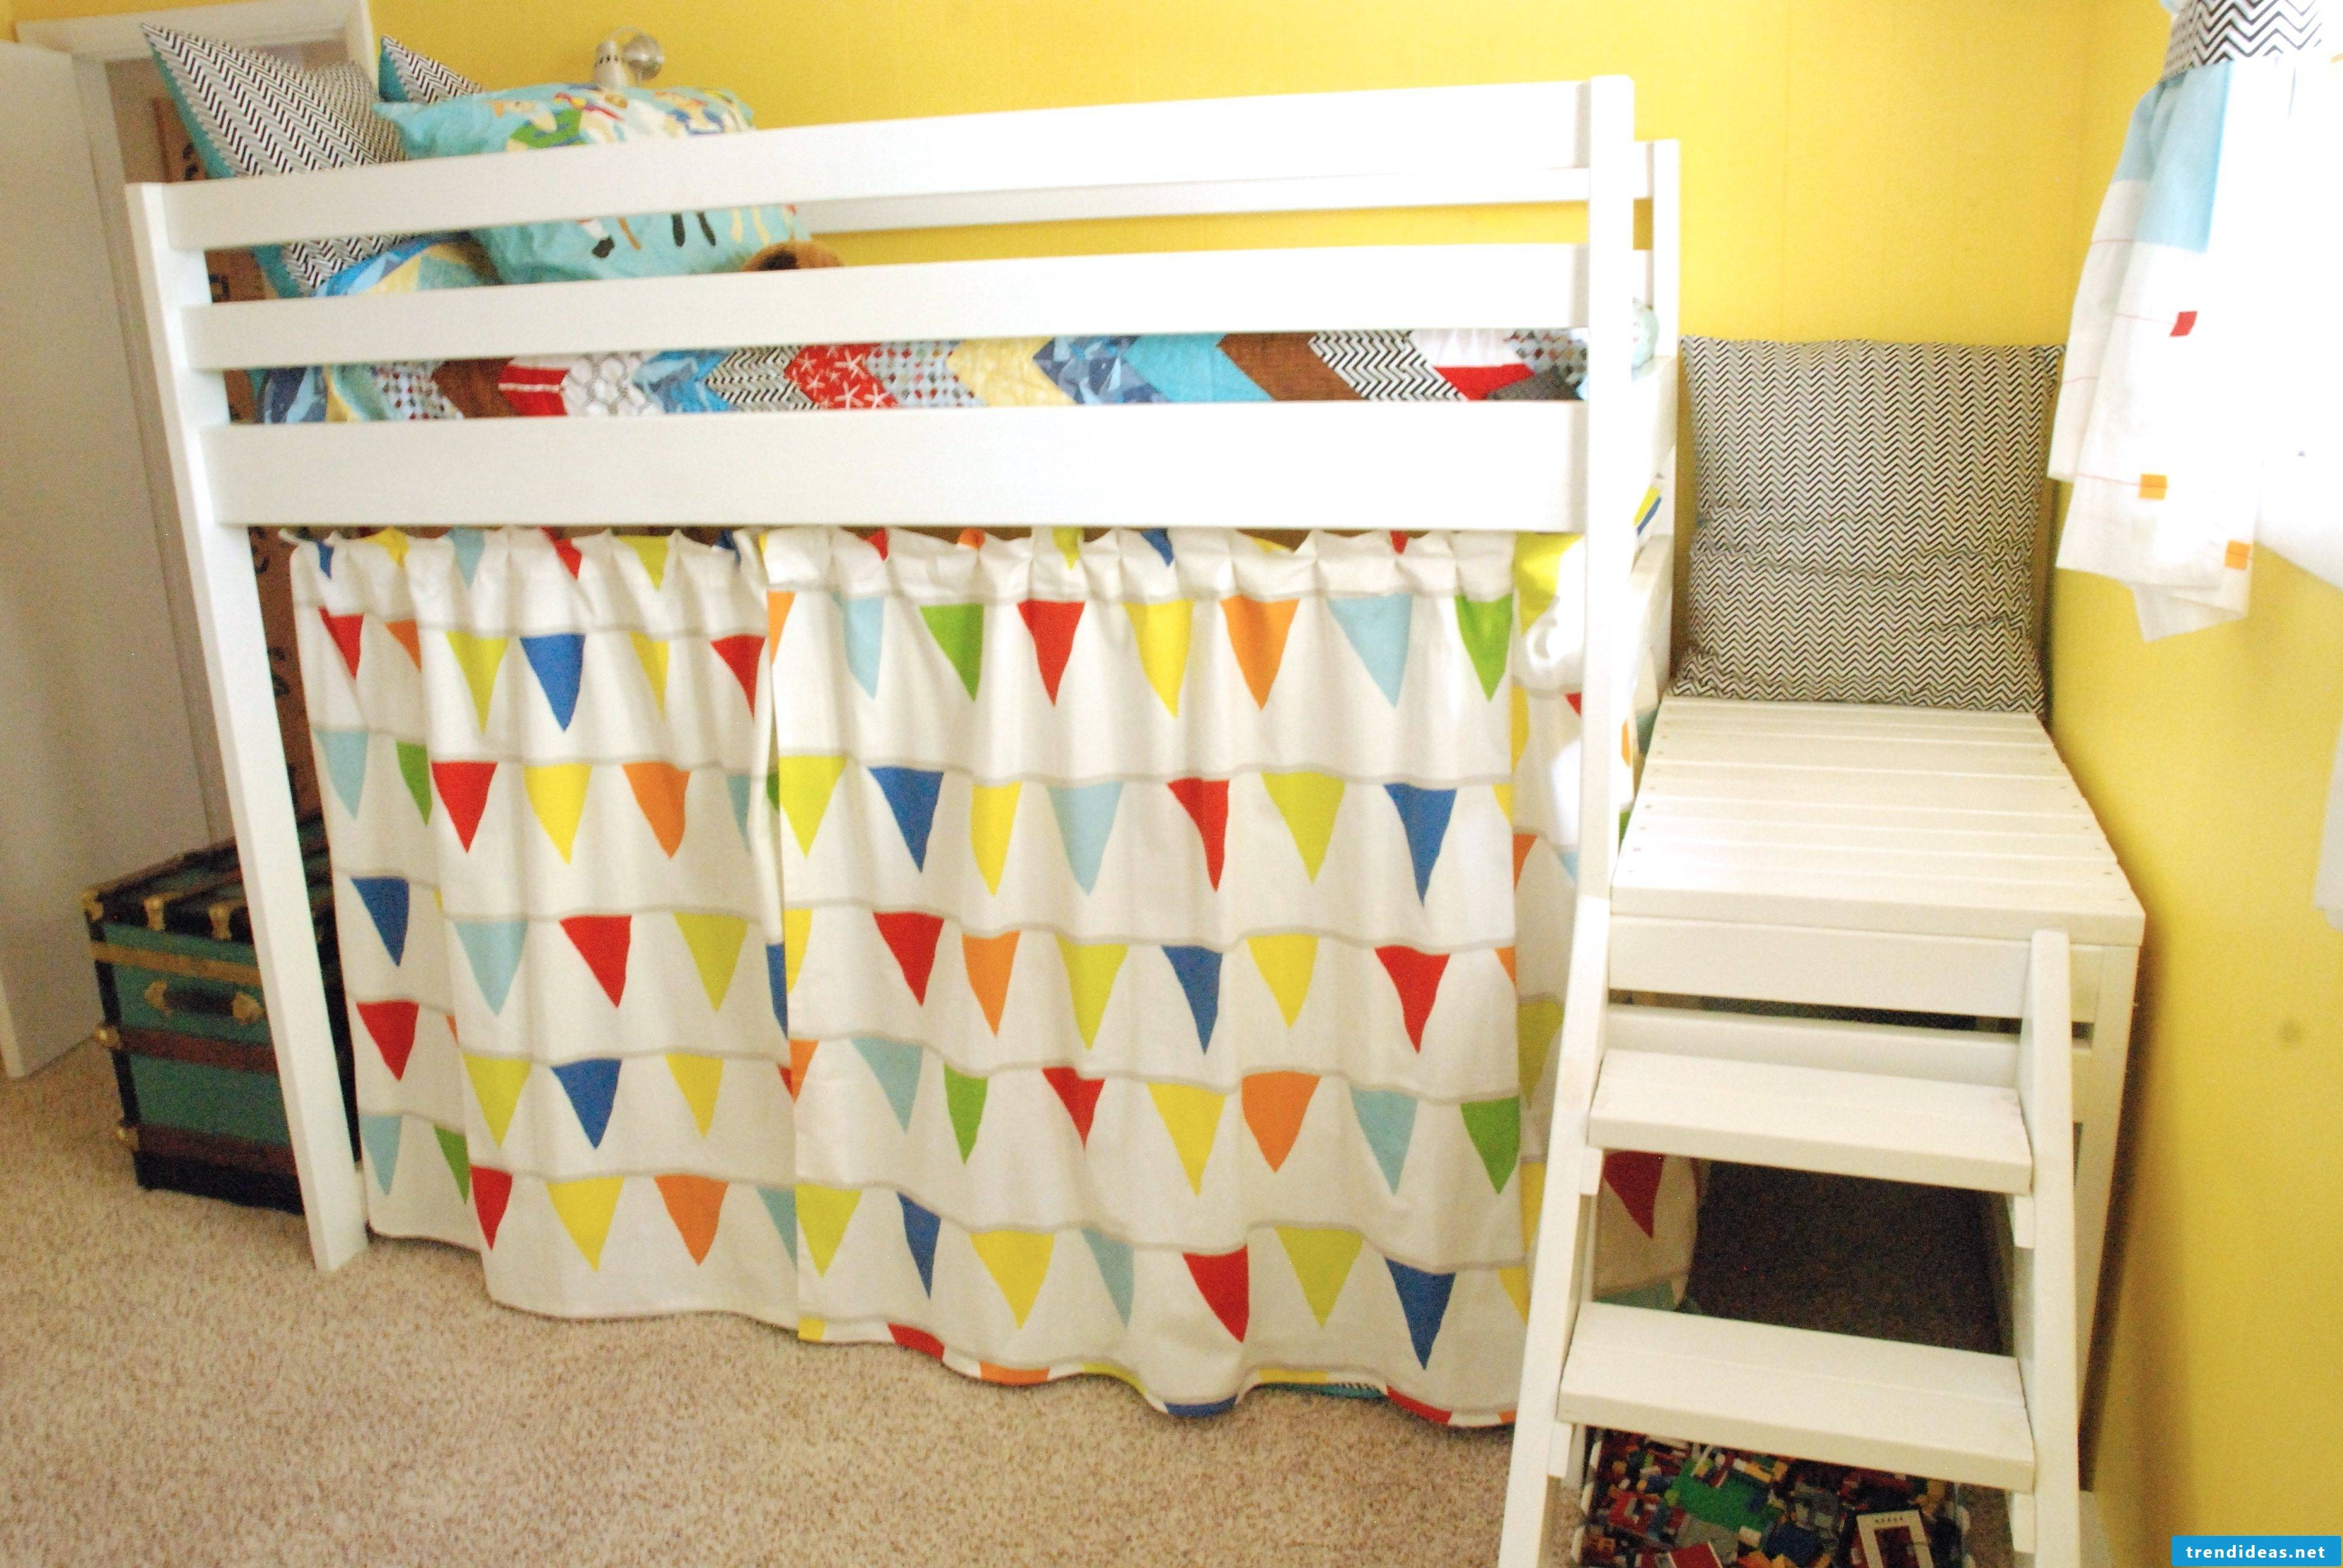 Curtains sew for cot